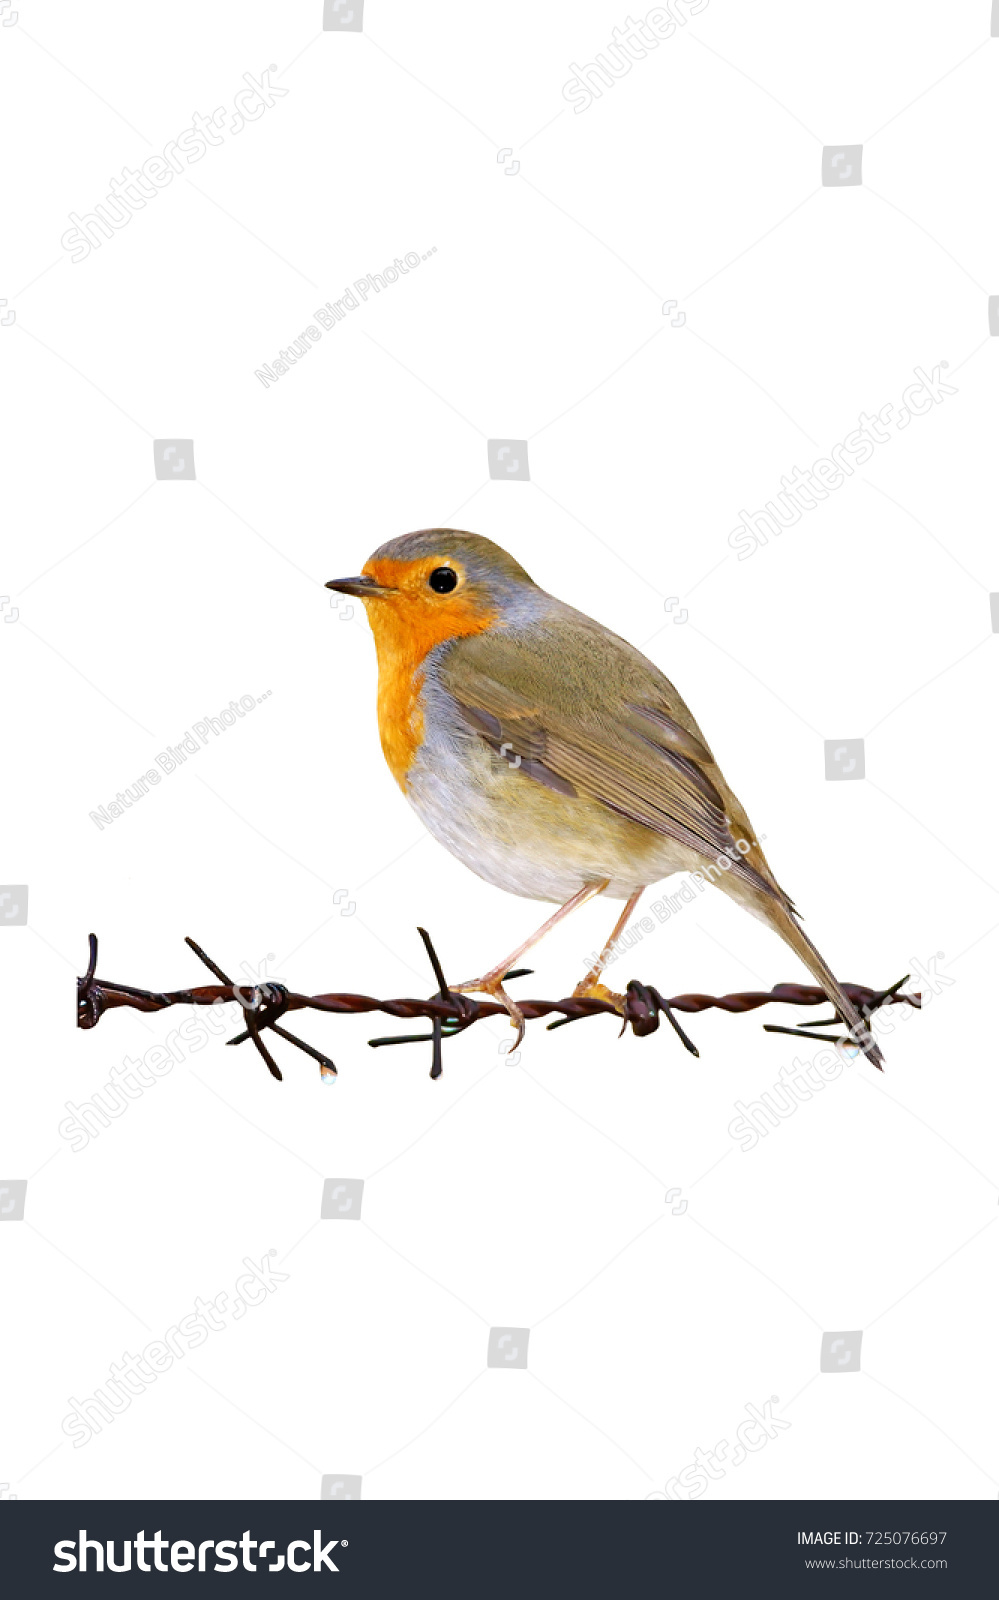 Isolated Cute Bird Barbed Wire White Stock Photo 725076697 ...